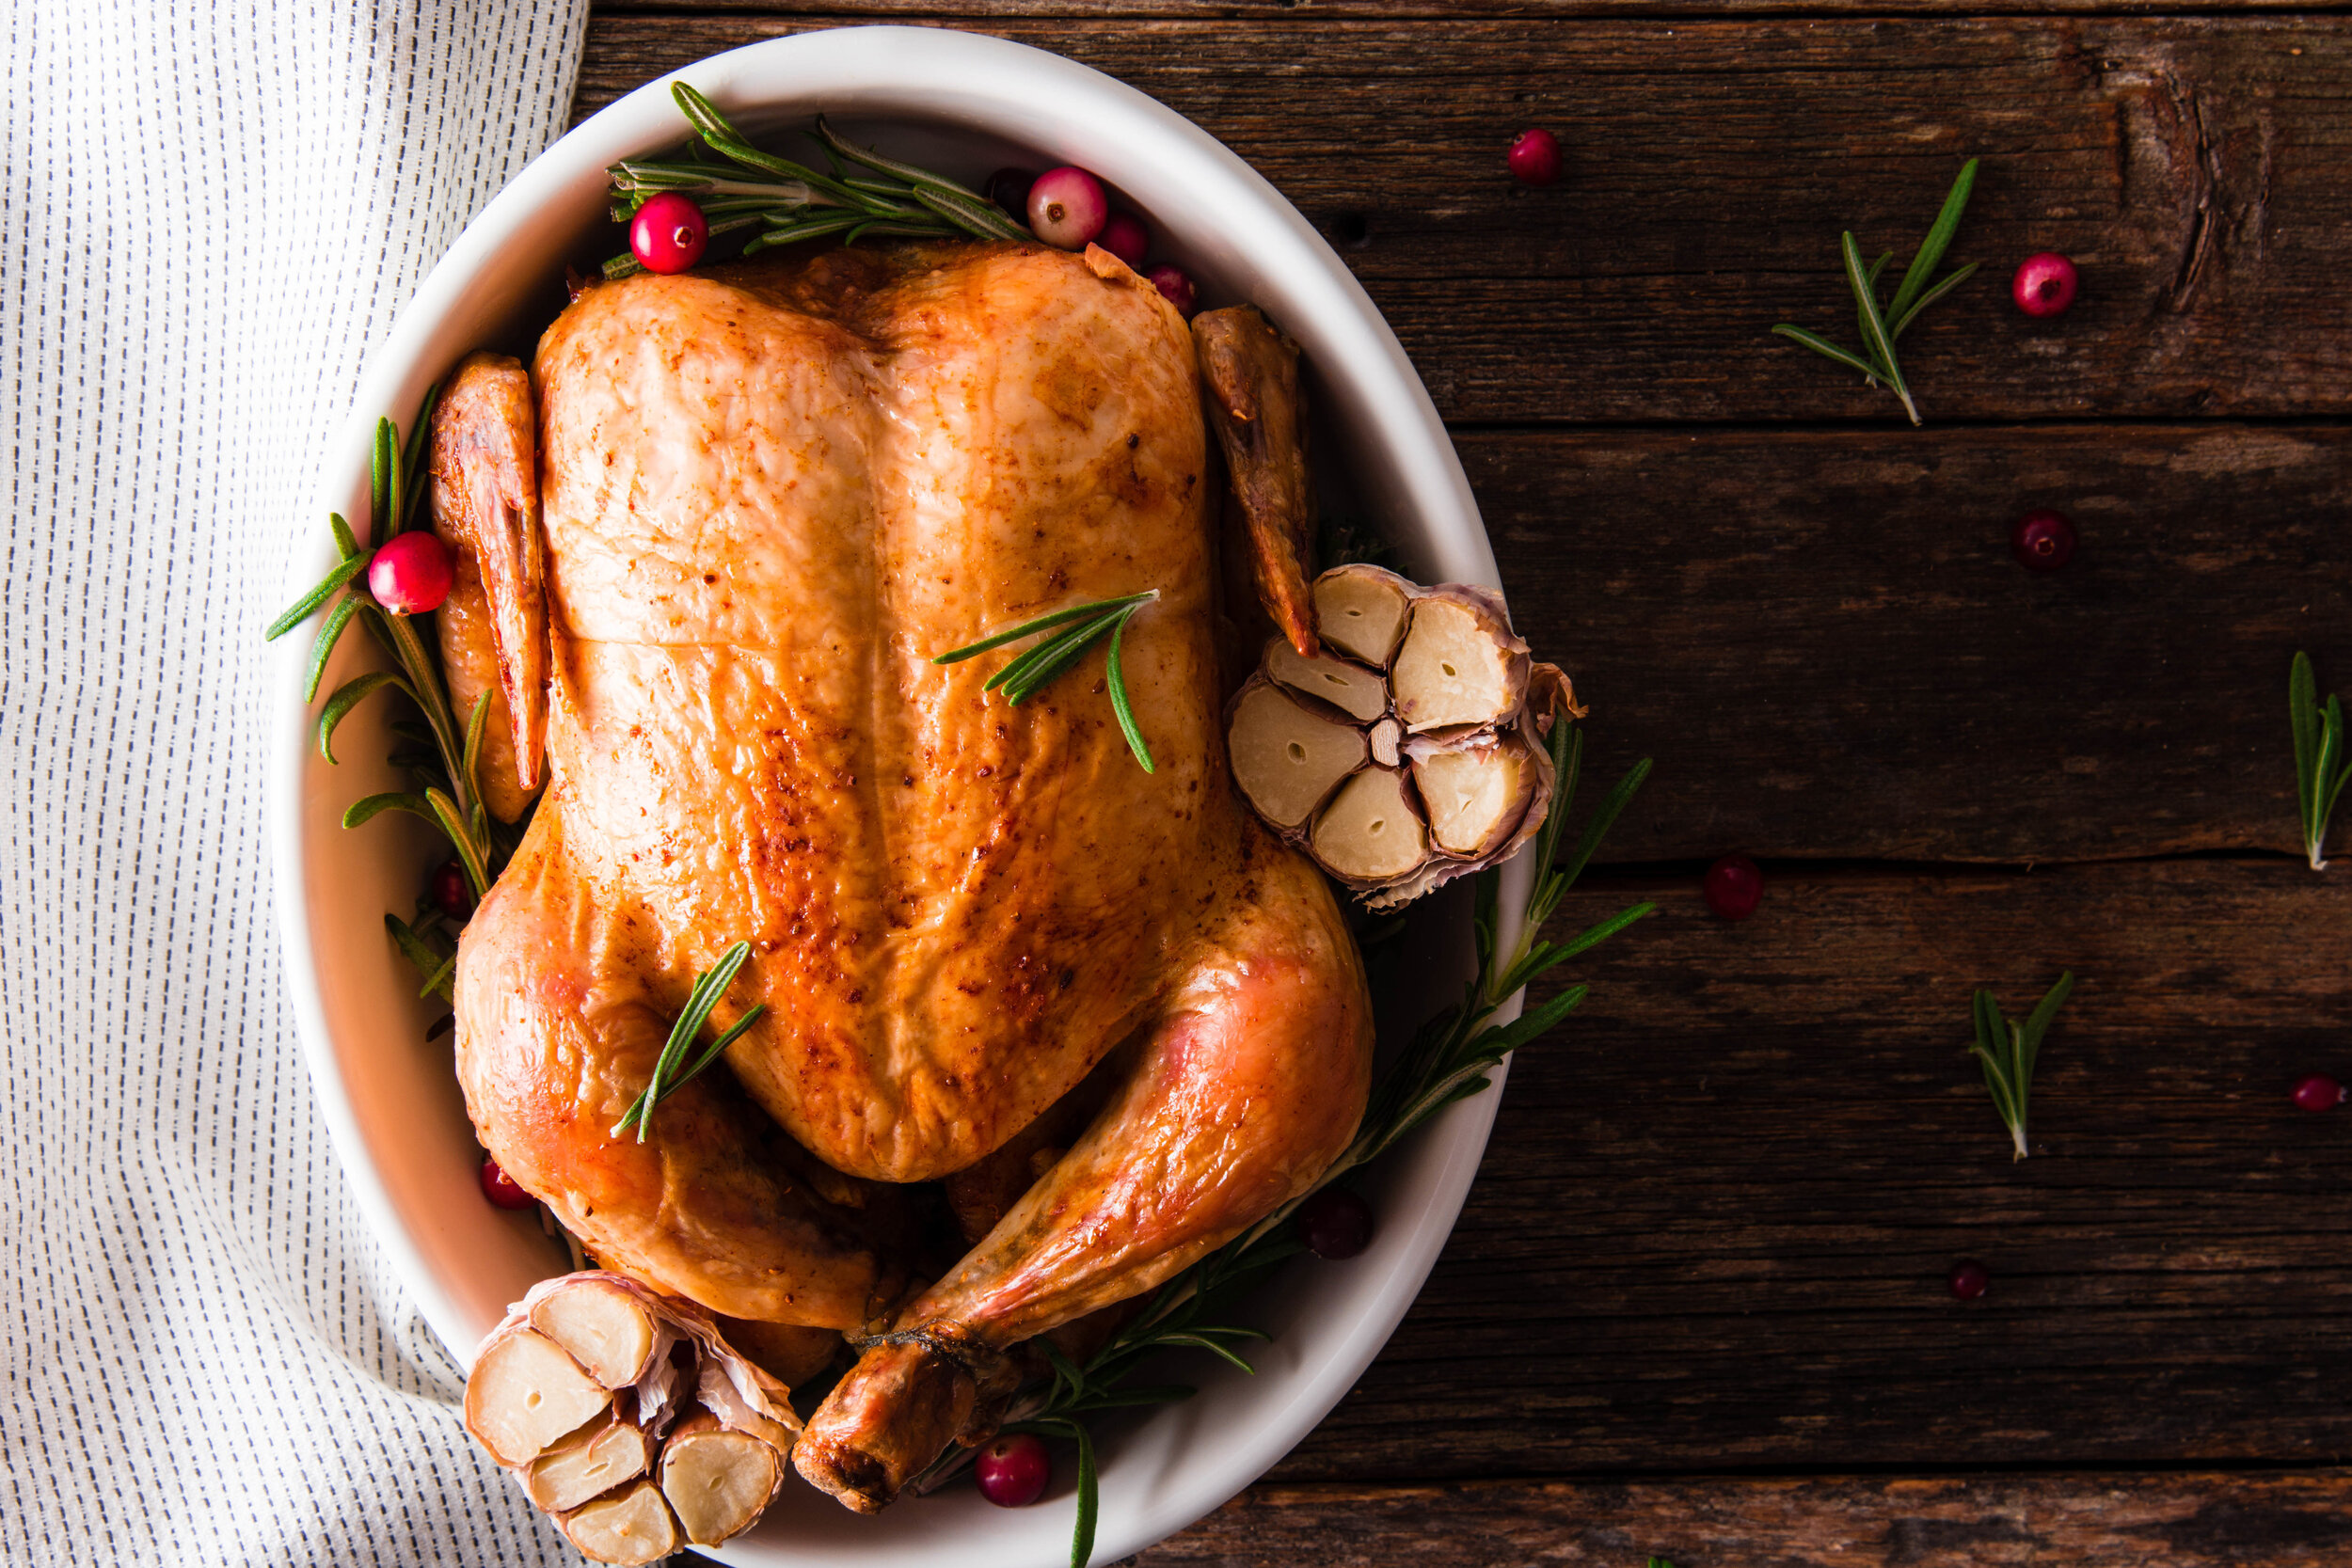 Thanksgiving Turkeys - Pre-order yours through Uncle Dean's. Help us support local farmers! Live local, love local.